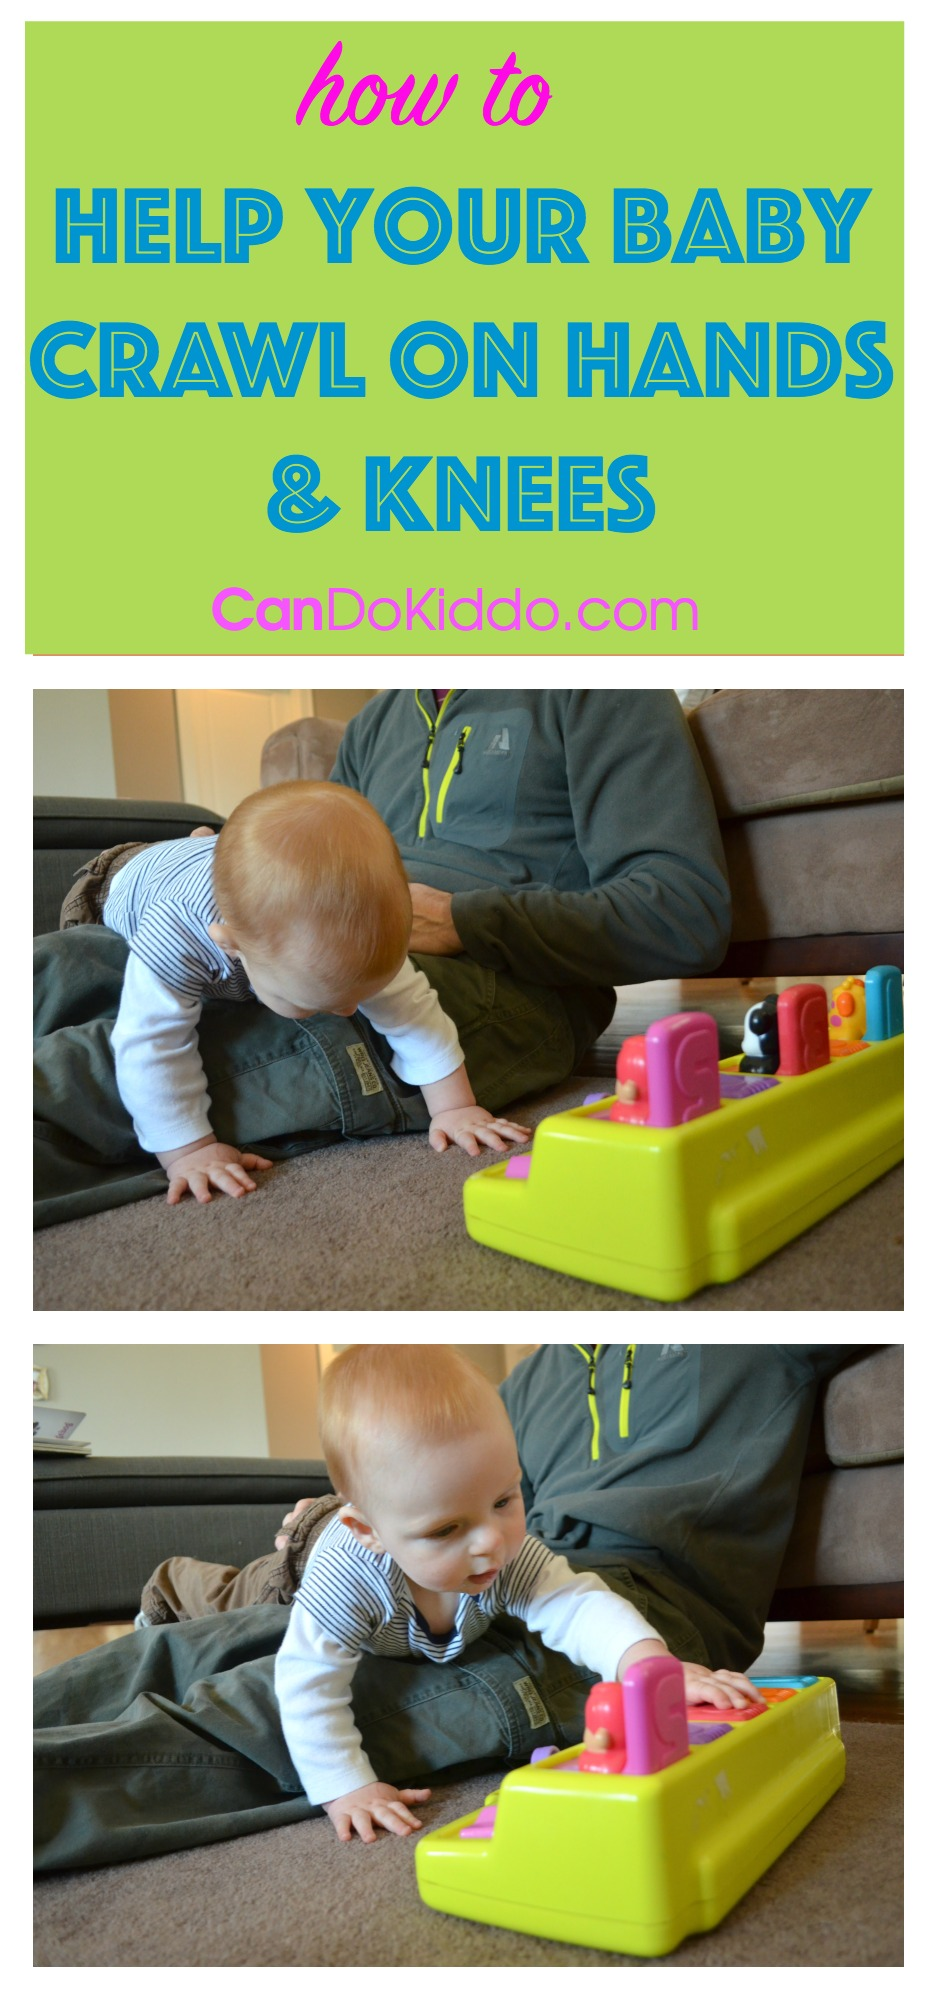 Help your baby crawl on hands and knees. CanDo Kiddo